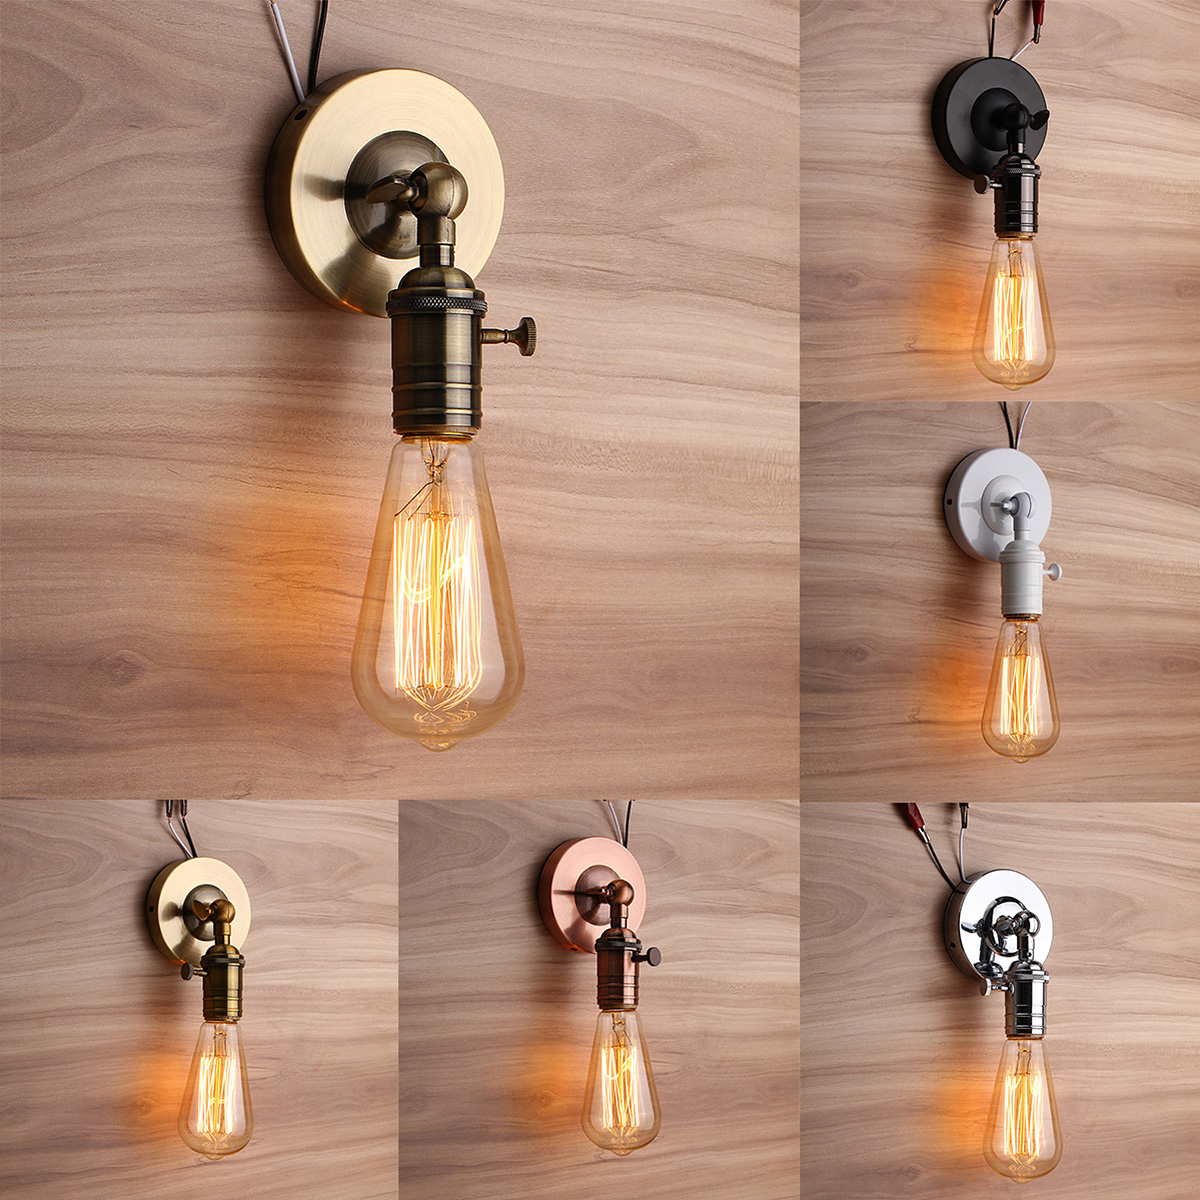 orbit edison race filament lights space bulb light table industrialceiling canada ceiling lamp sputnik com industrial decomust